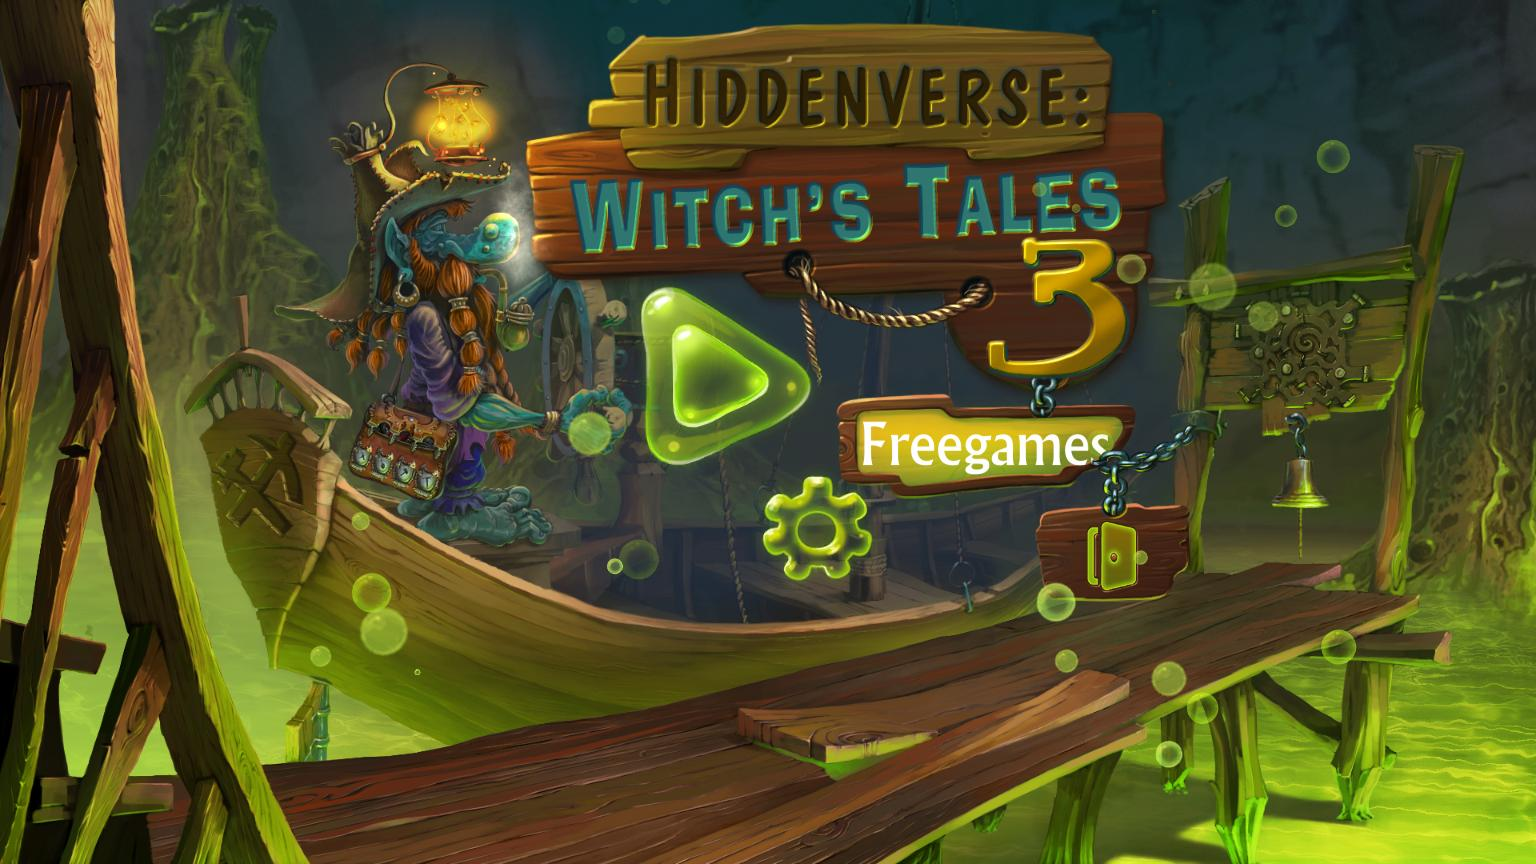 Hiddenverse: Witch's Tales 3 (En)